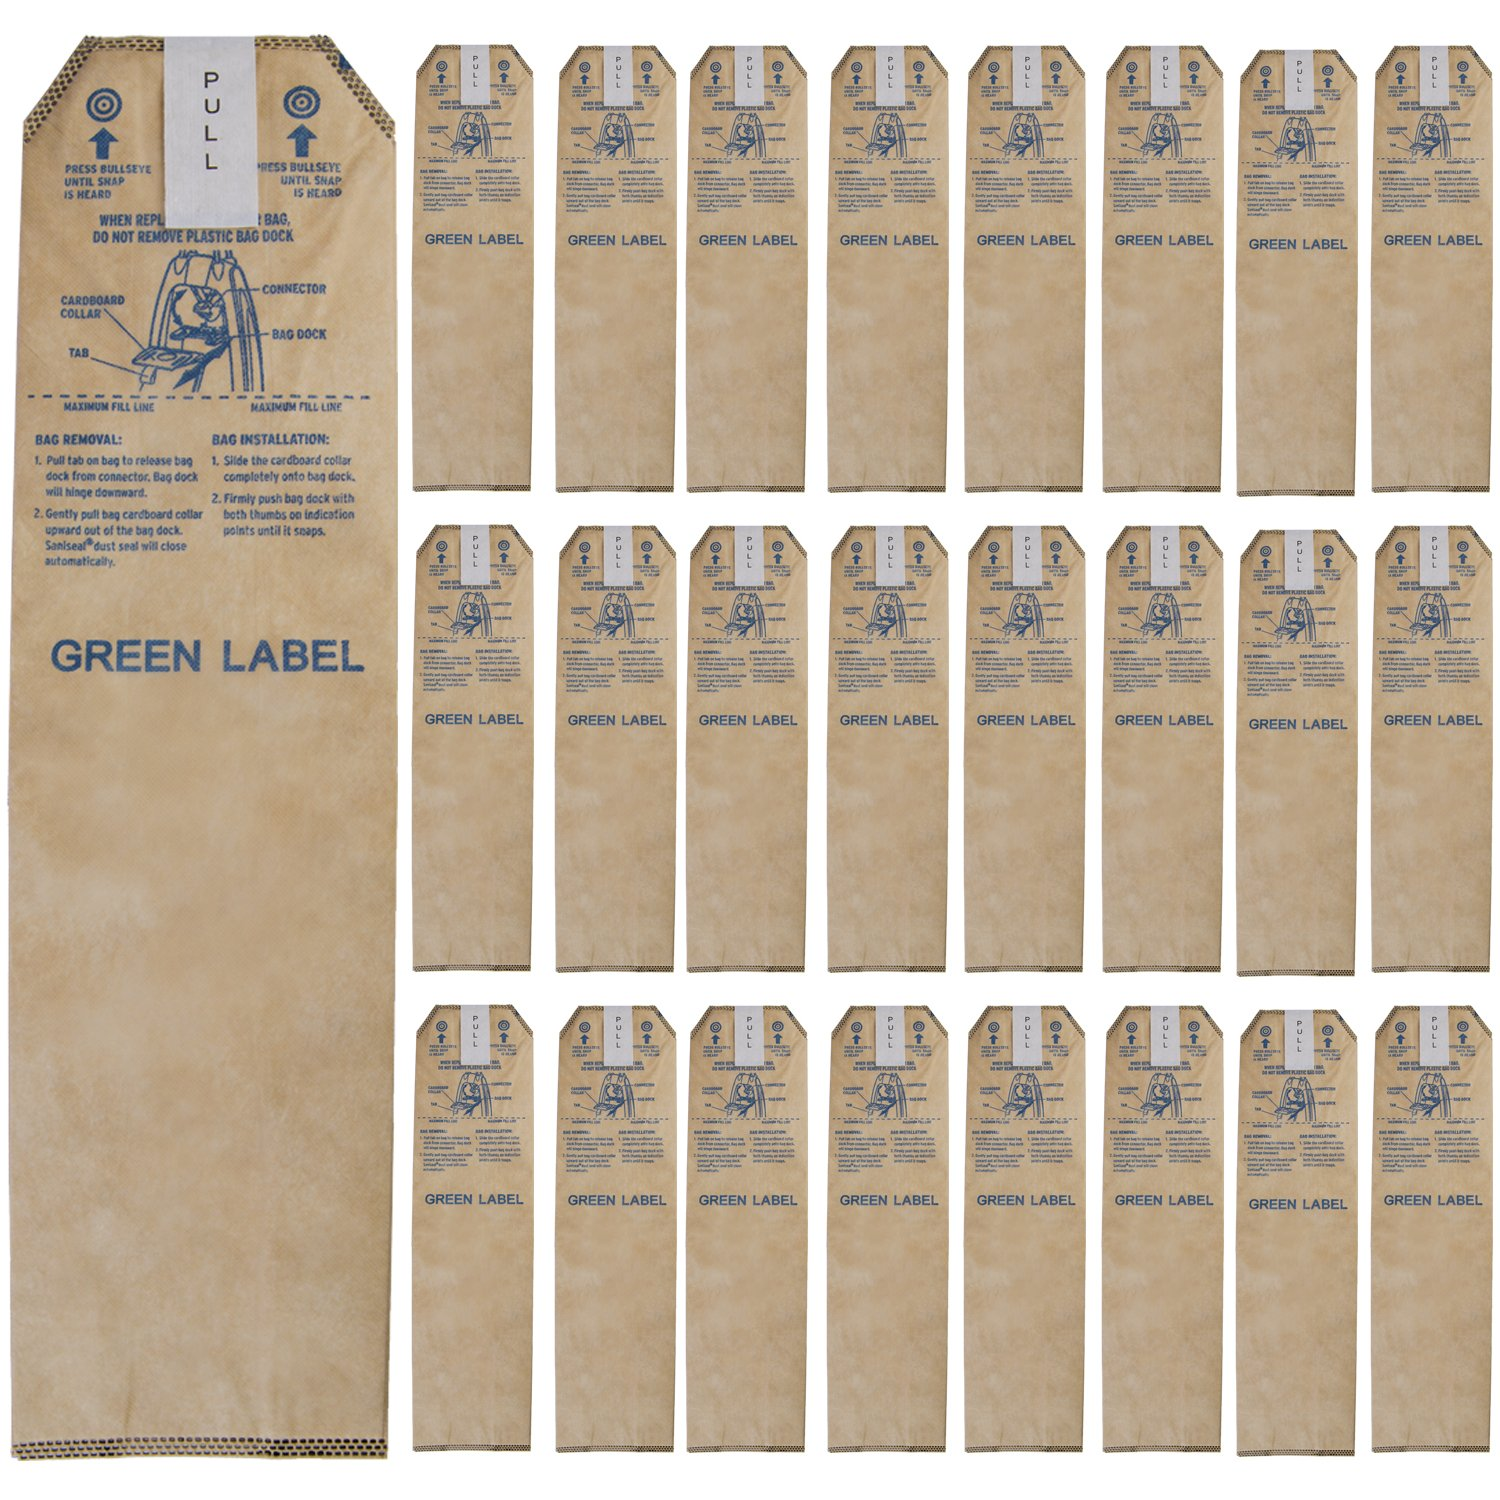 Green Label 25 Pack for Oreck Magnesium HEPA Odor Fighting Upright Vacuum Cleaner Bags. (Compares to: LWPK25OH, LWPK6OH, LWPK3OH)